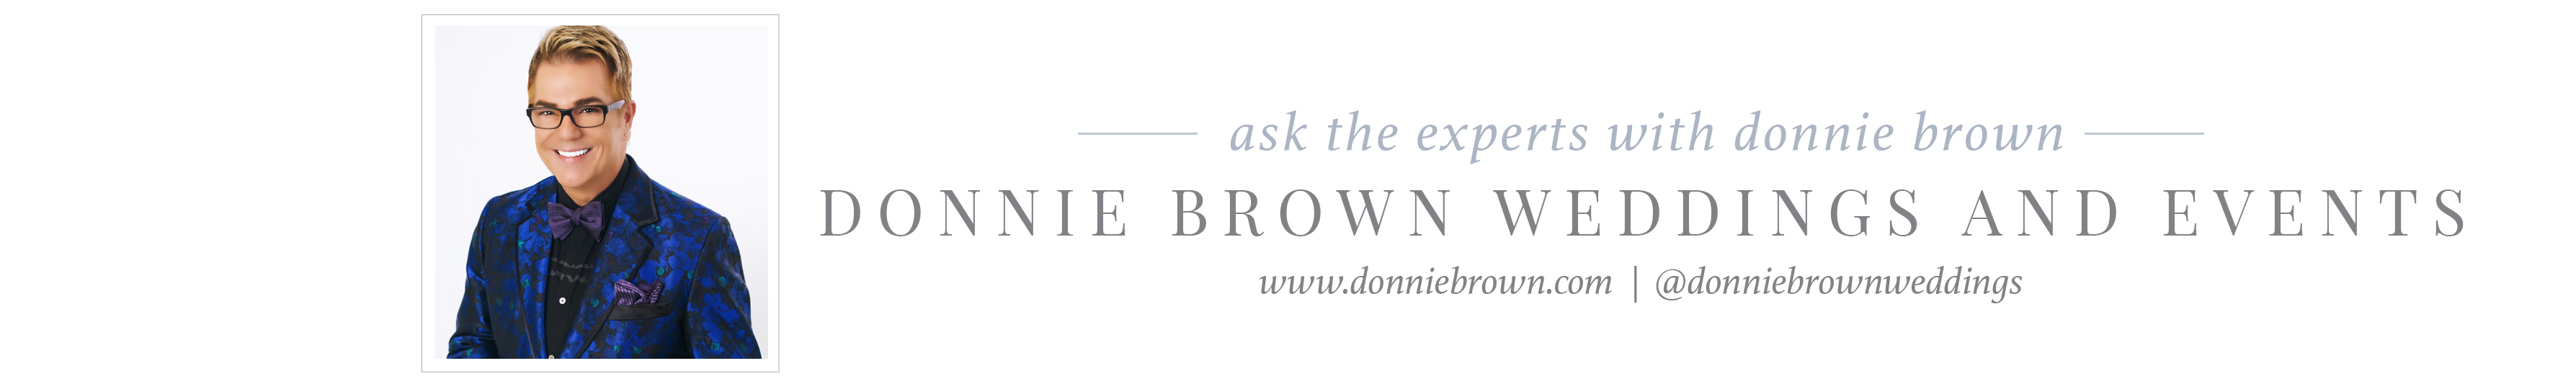 donnie brown wedding planner